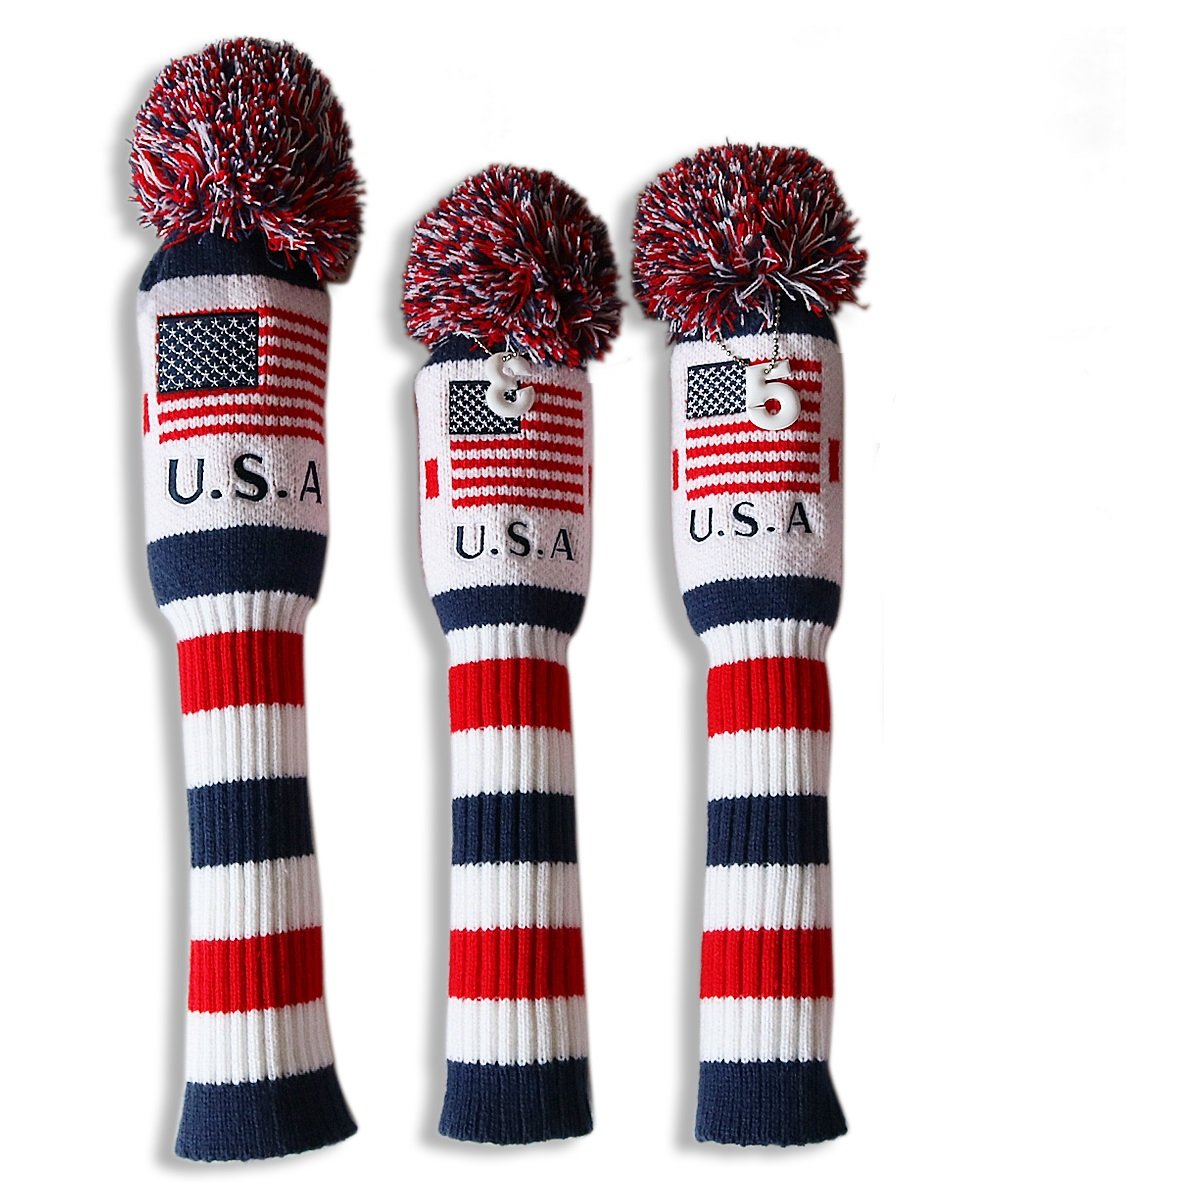 Craftsman Golf US Flag Knit Pom Pom White Blue Red Driver,Fairway Wood, Hybrid Head Cover Headcover for Callaway Mizuno Cobra Taylormade (3pcs (#1,3,5))